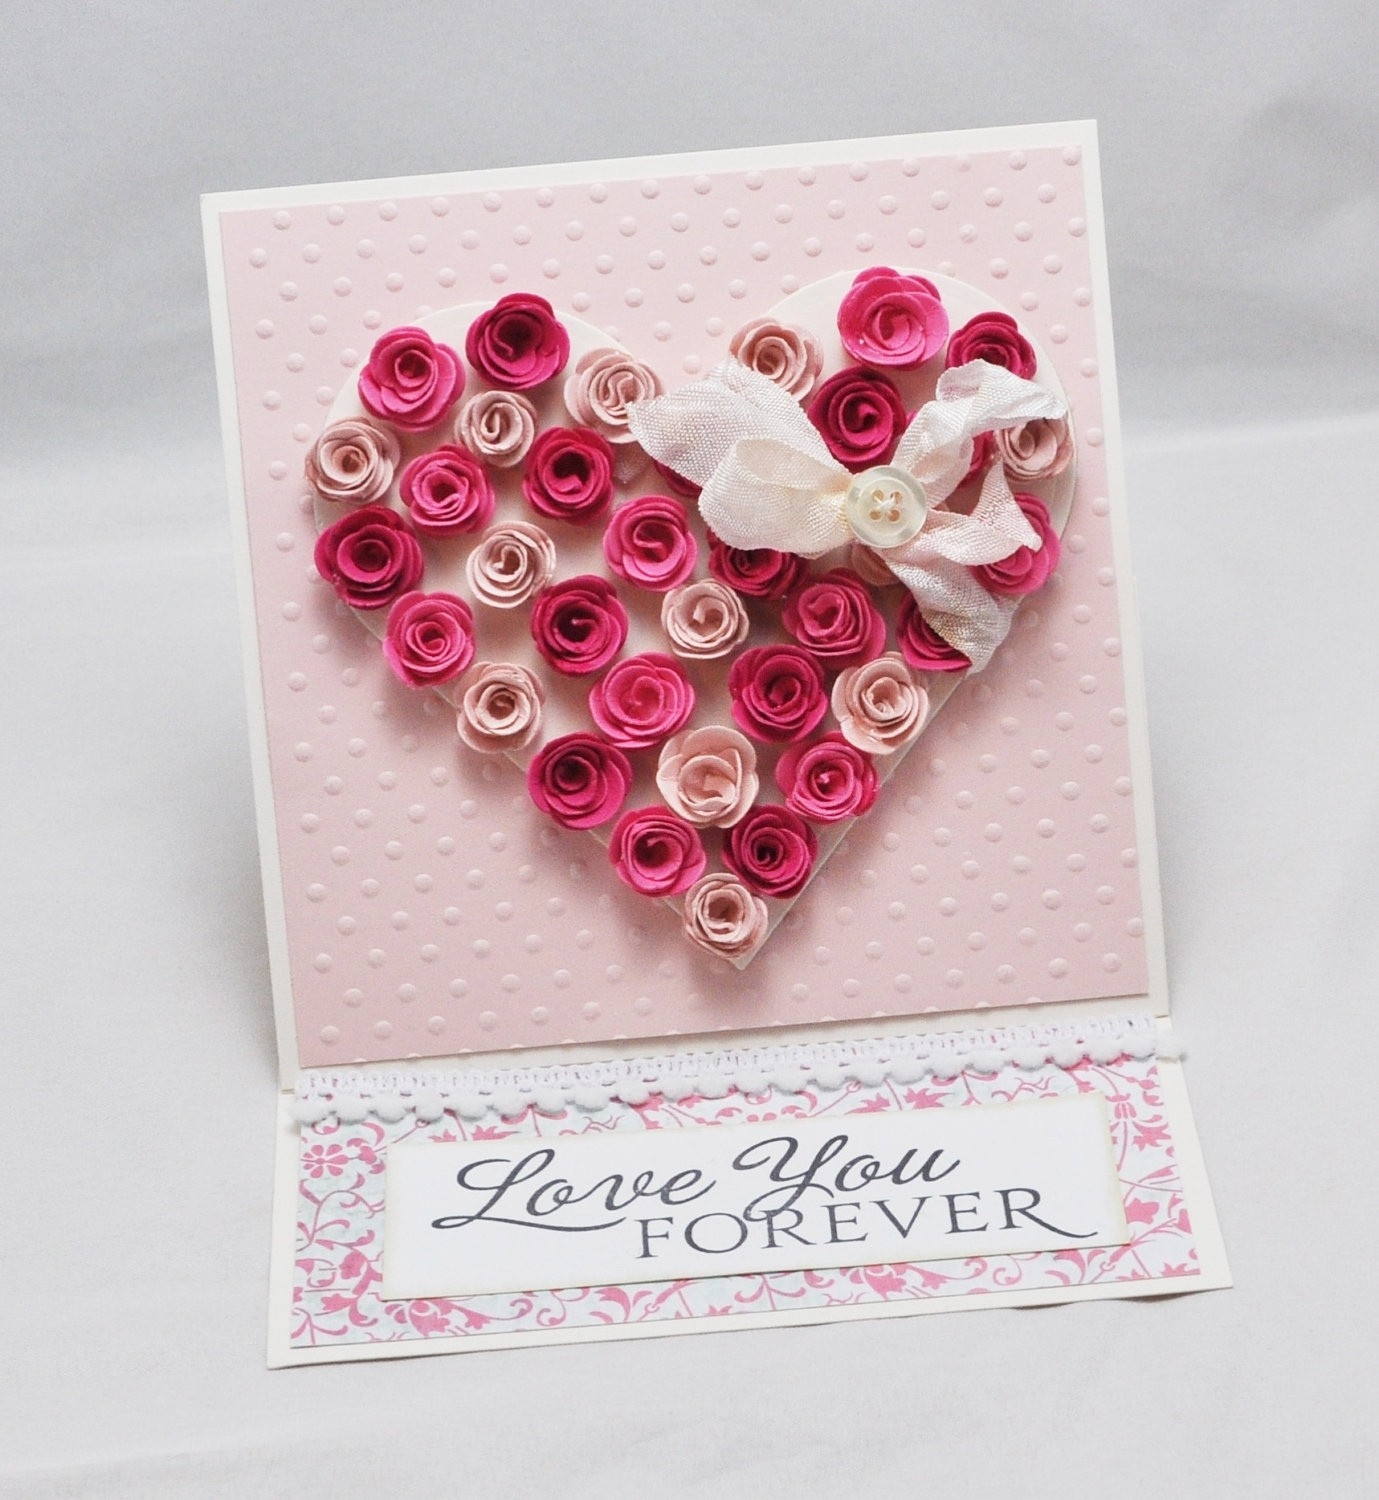 Simple Handmade Love Cards | Flogfolioweekly pertaining to Handmade Love Cards Ideas 30168